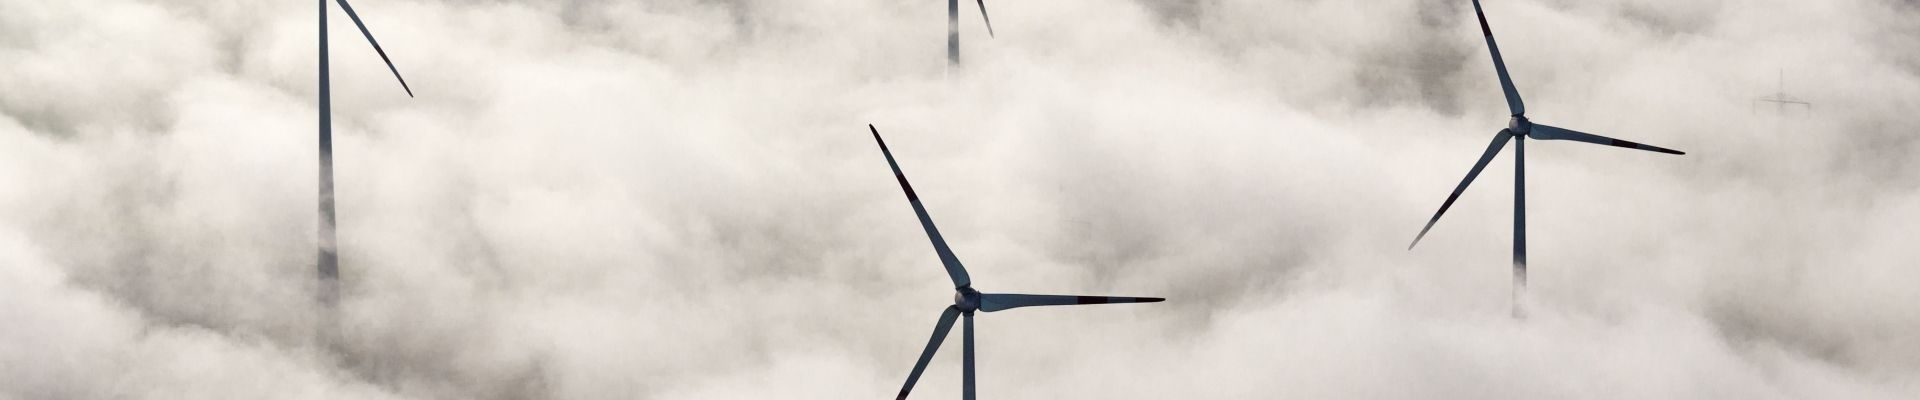 Wind energy plants in the clouds